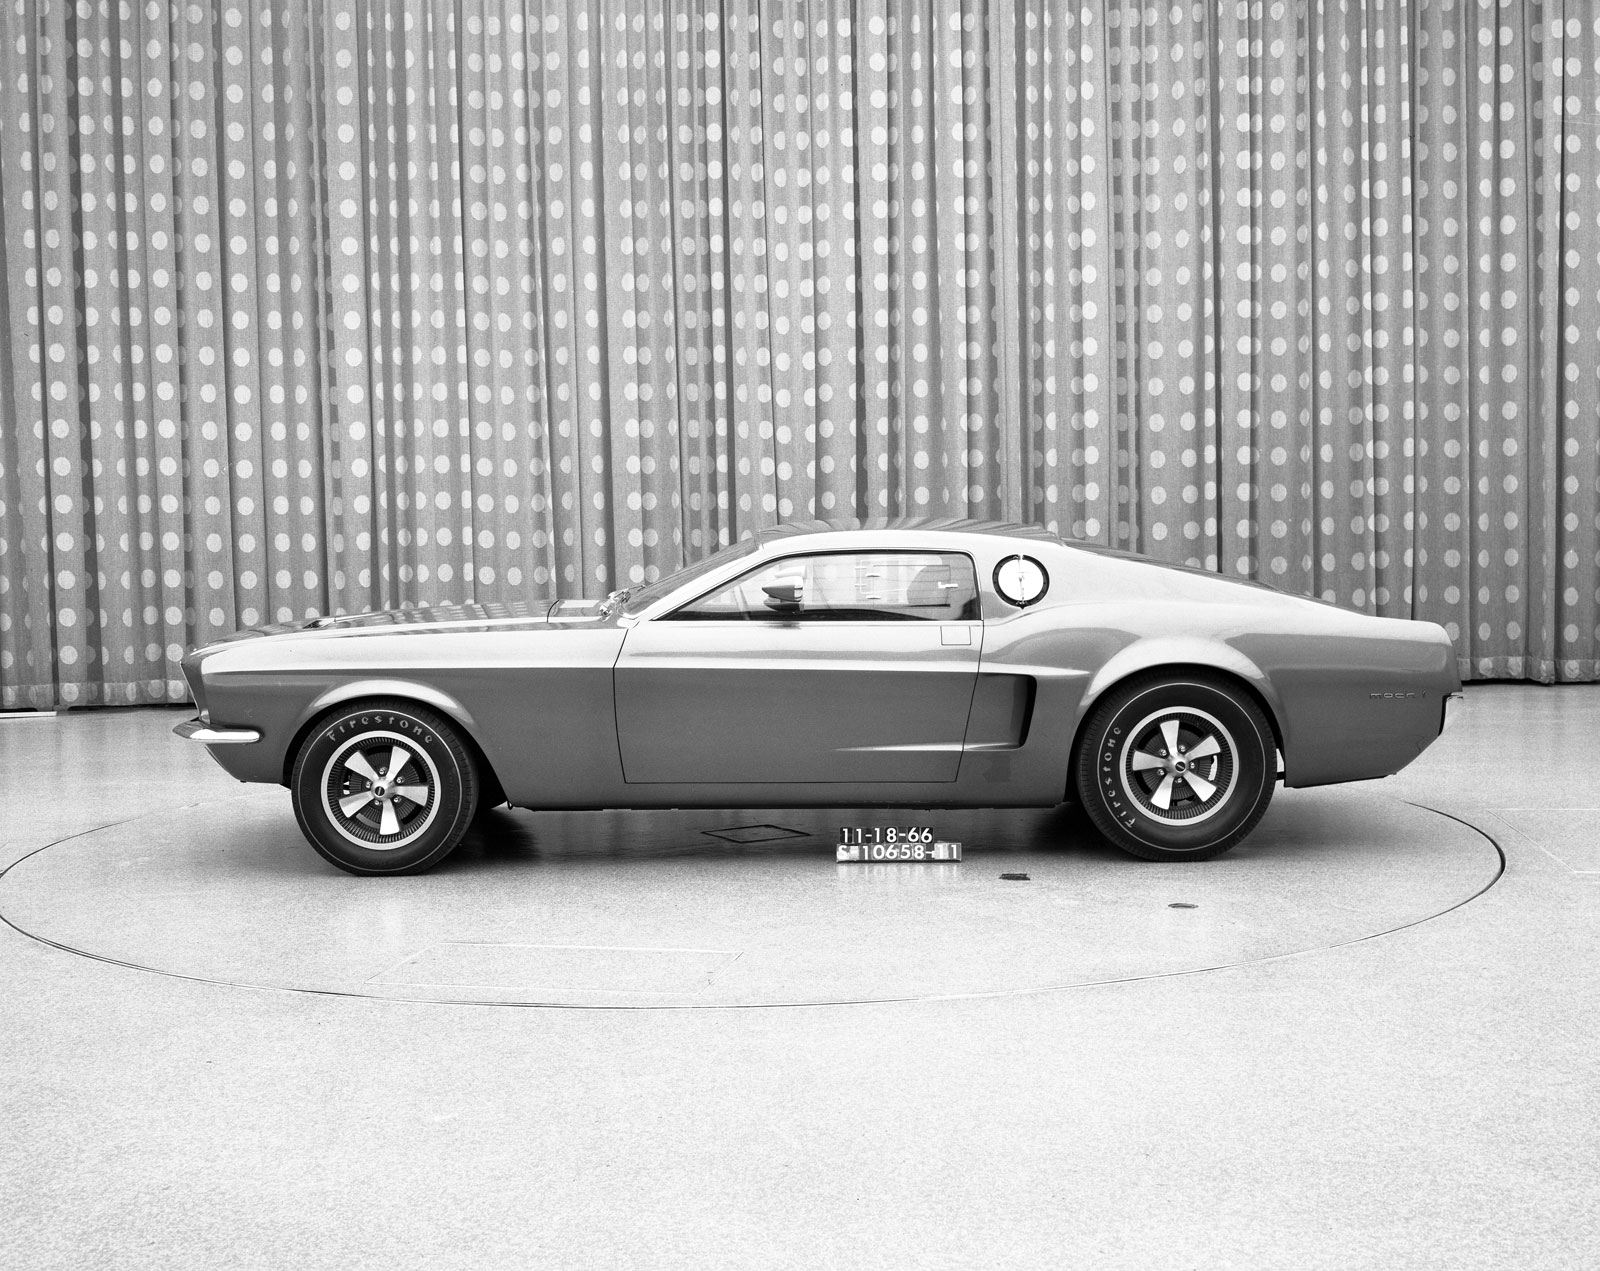 1966 Ford Mustang Mach 1 Concept - Car Body Design